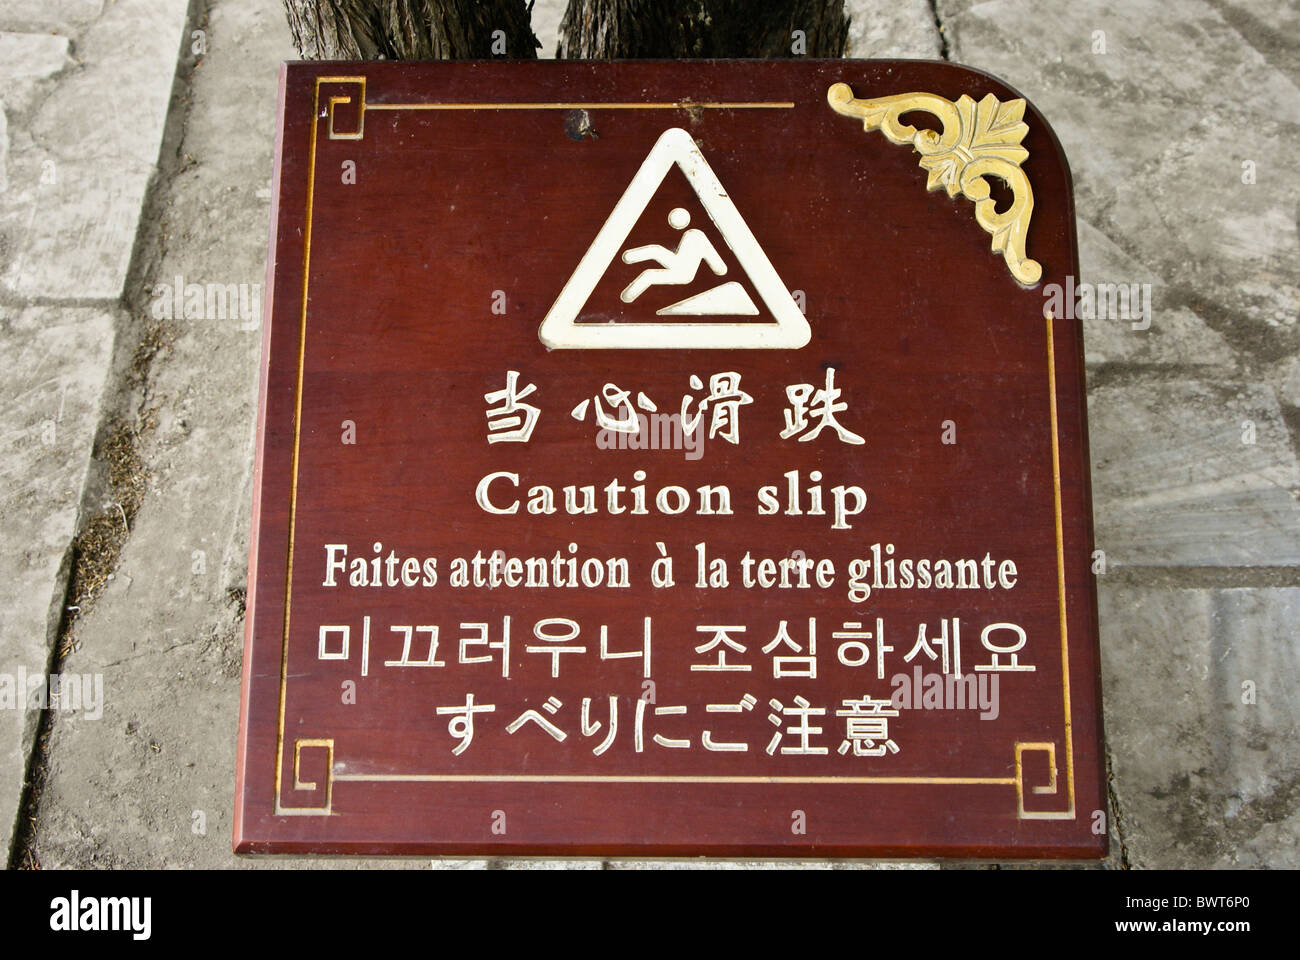 Chinese warning sign: slippery - Stock Image